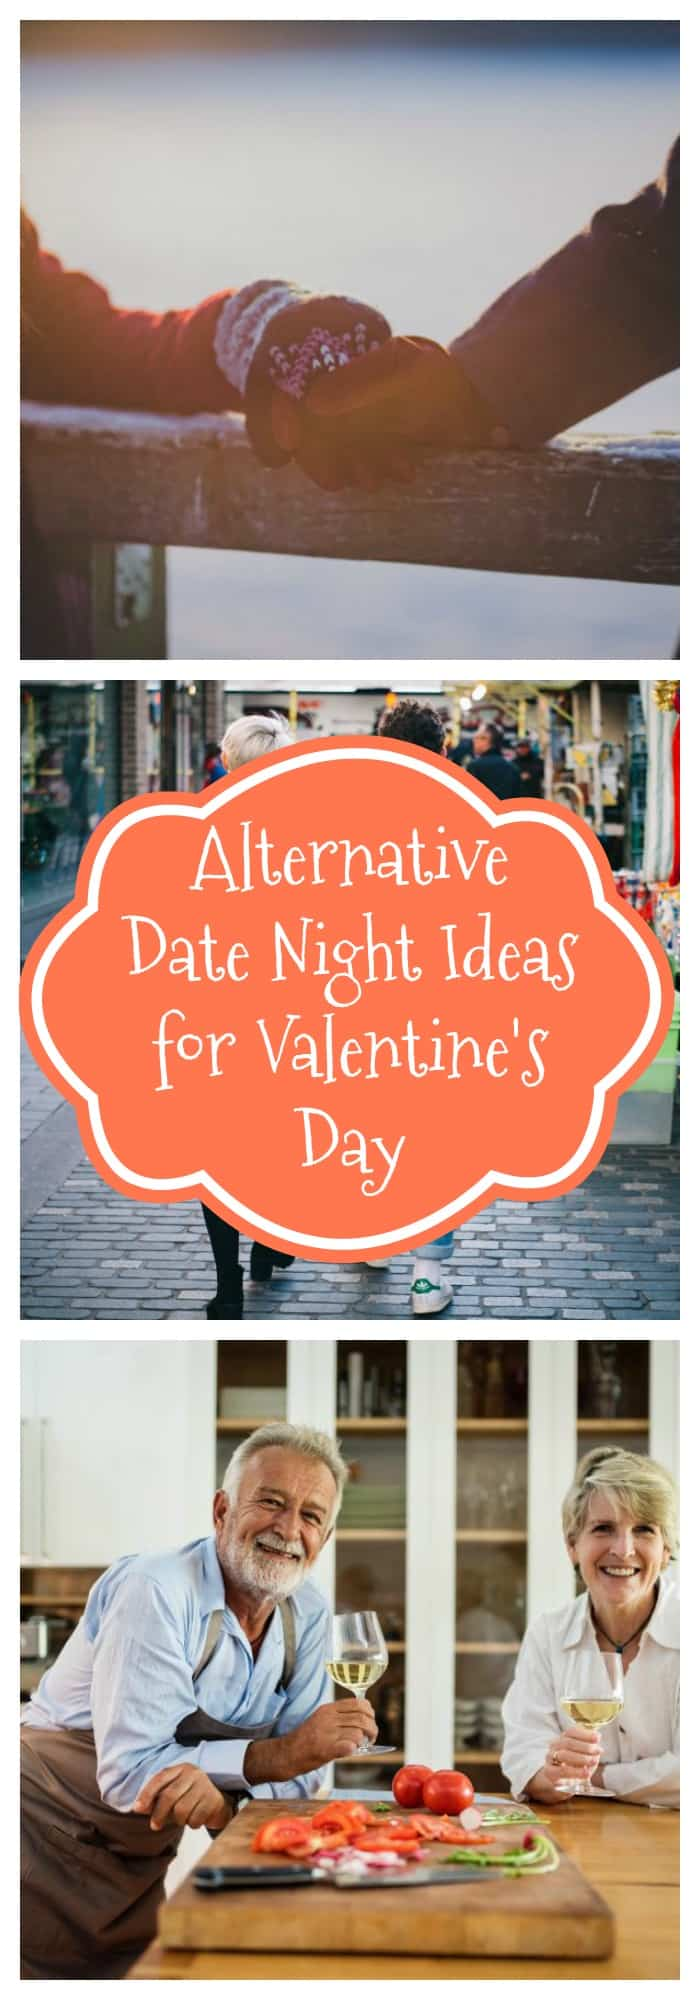 Alternative Date Night Ideas for Valentine's Day